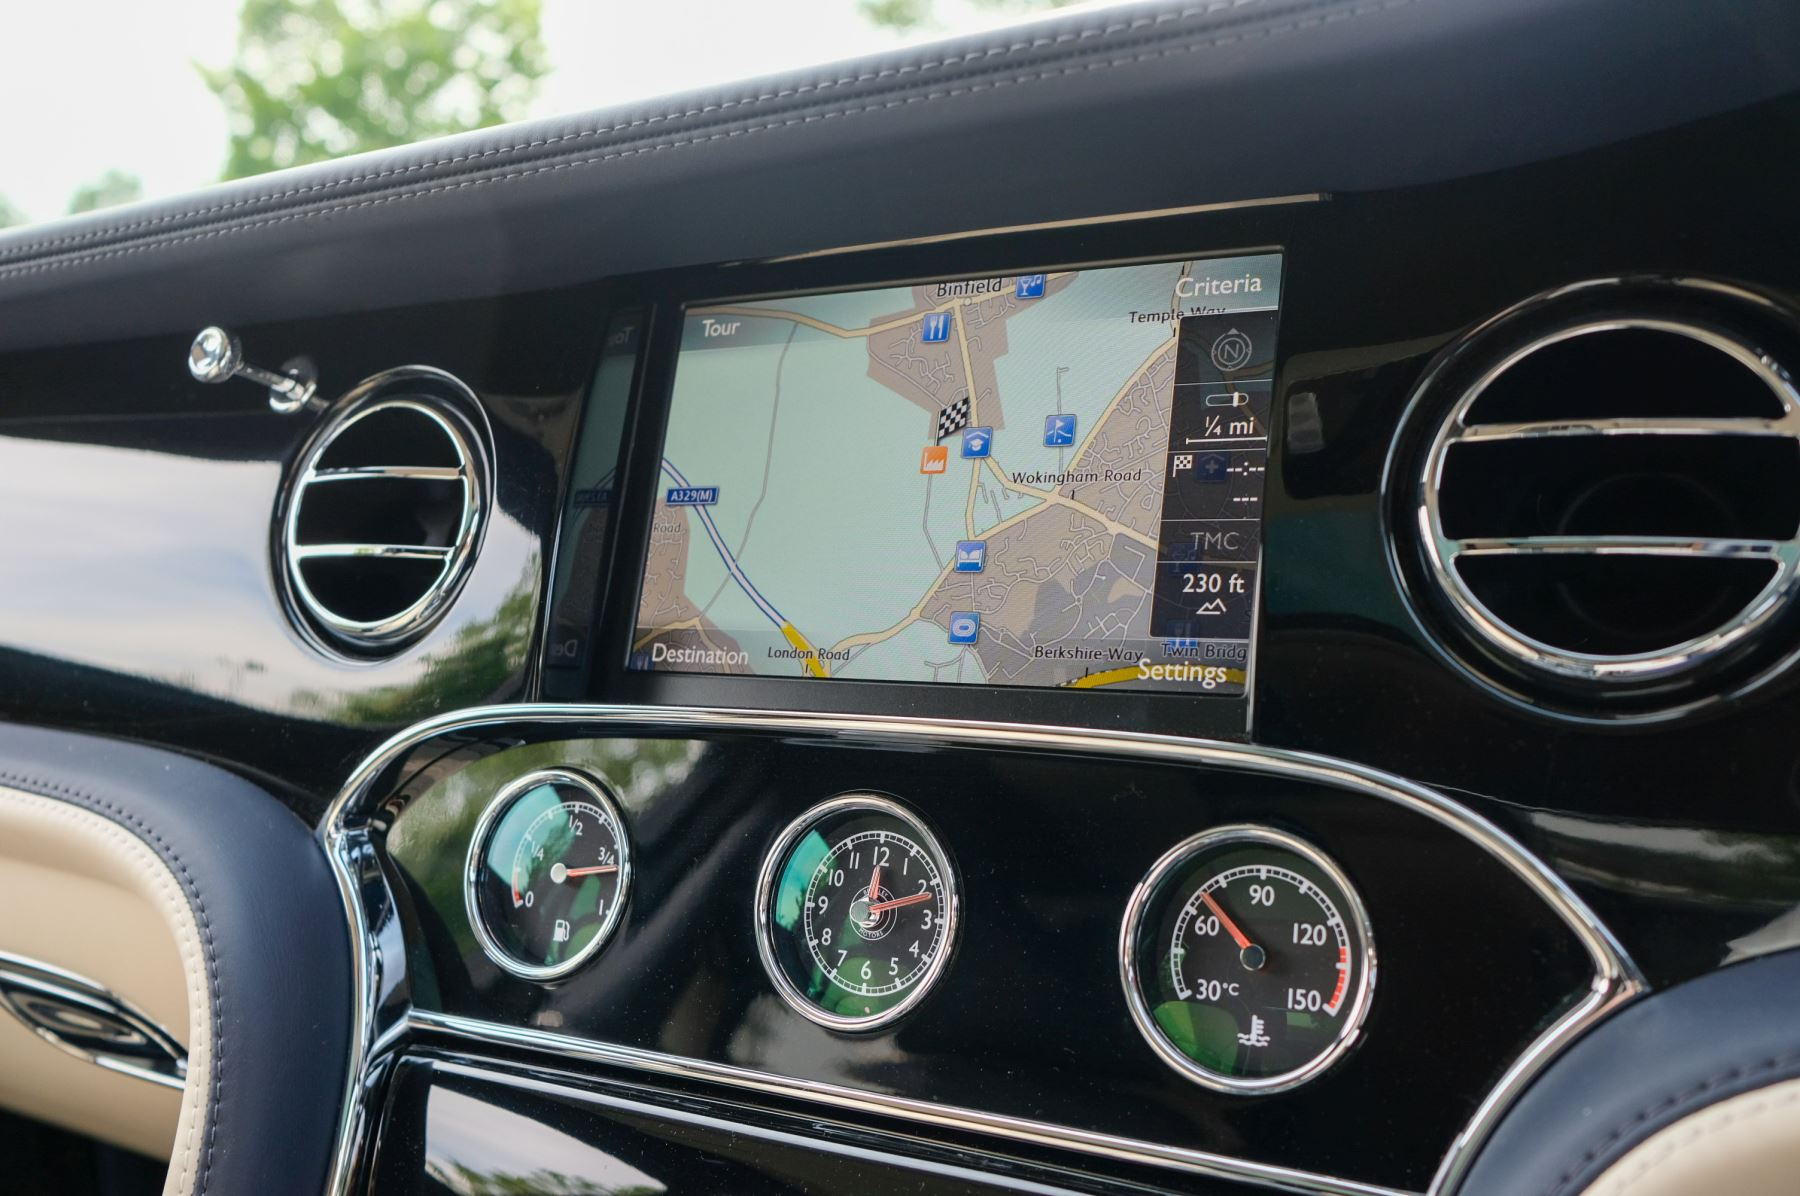 Bentley Mulsanne Speed 6.8 V8 Speed - Speed Premier and Entertainment Specification image 23